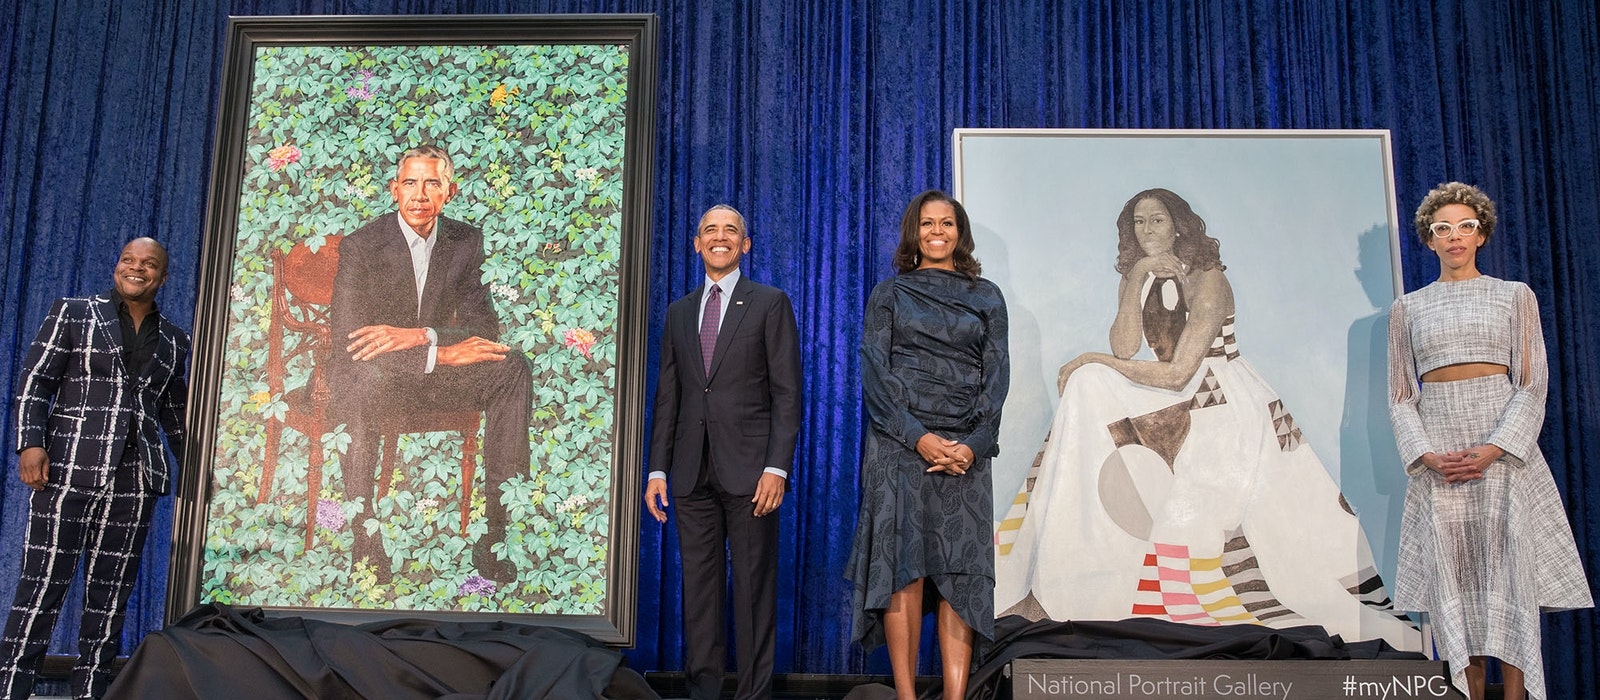 Unveiling the portraits of former President Barack Obama and former First Lady Michelle Obama at the National Portrait Gallery in Washington, D.C., February 12.